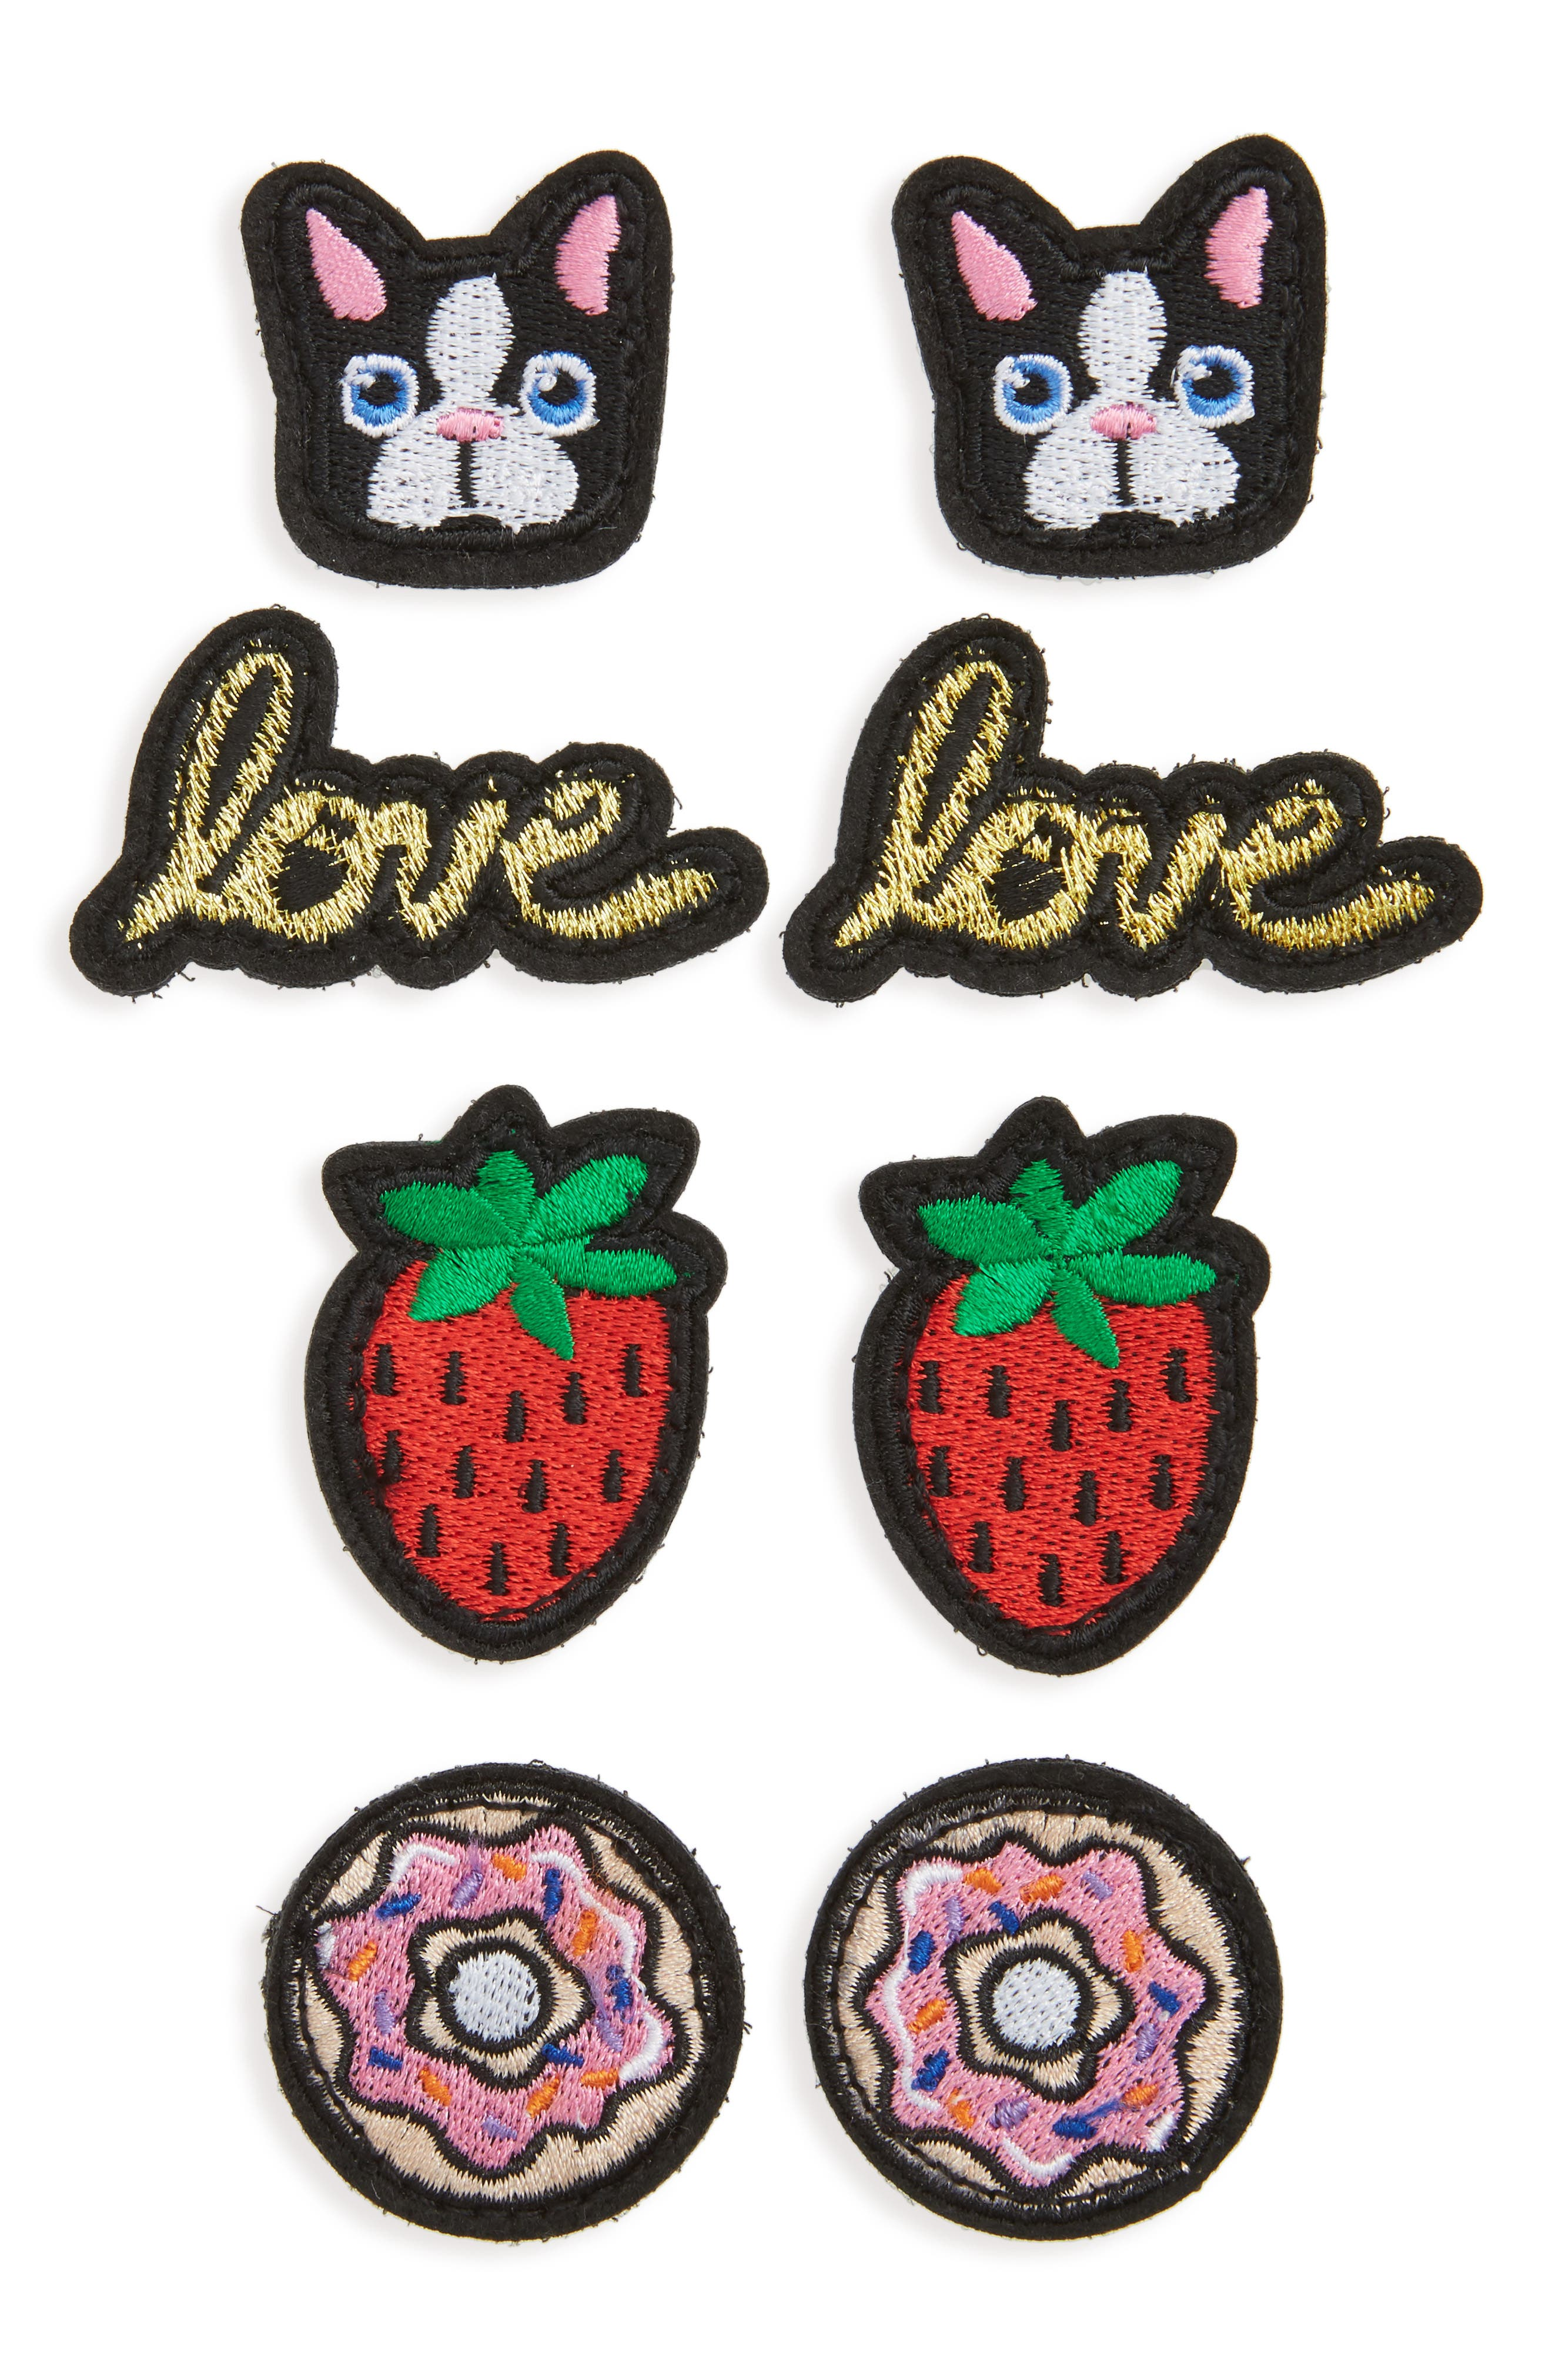 Main Image - Tucker + Tate Set of 8 Embroidered Patches